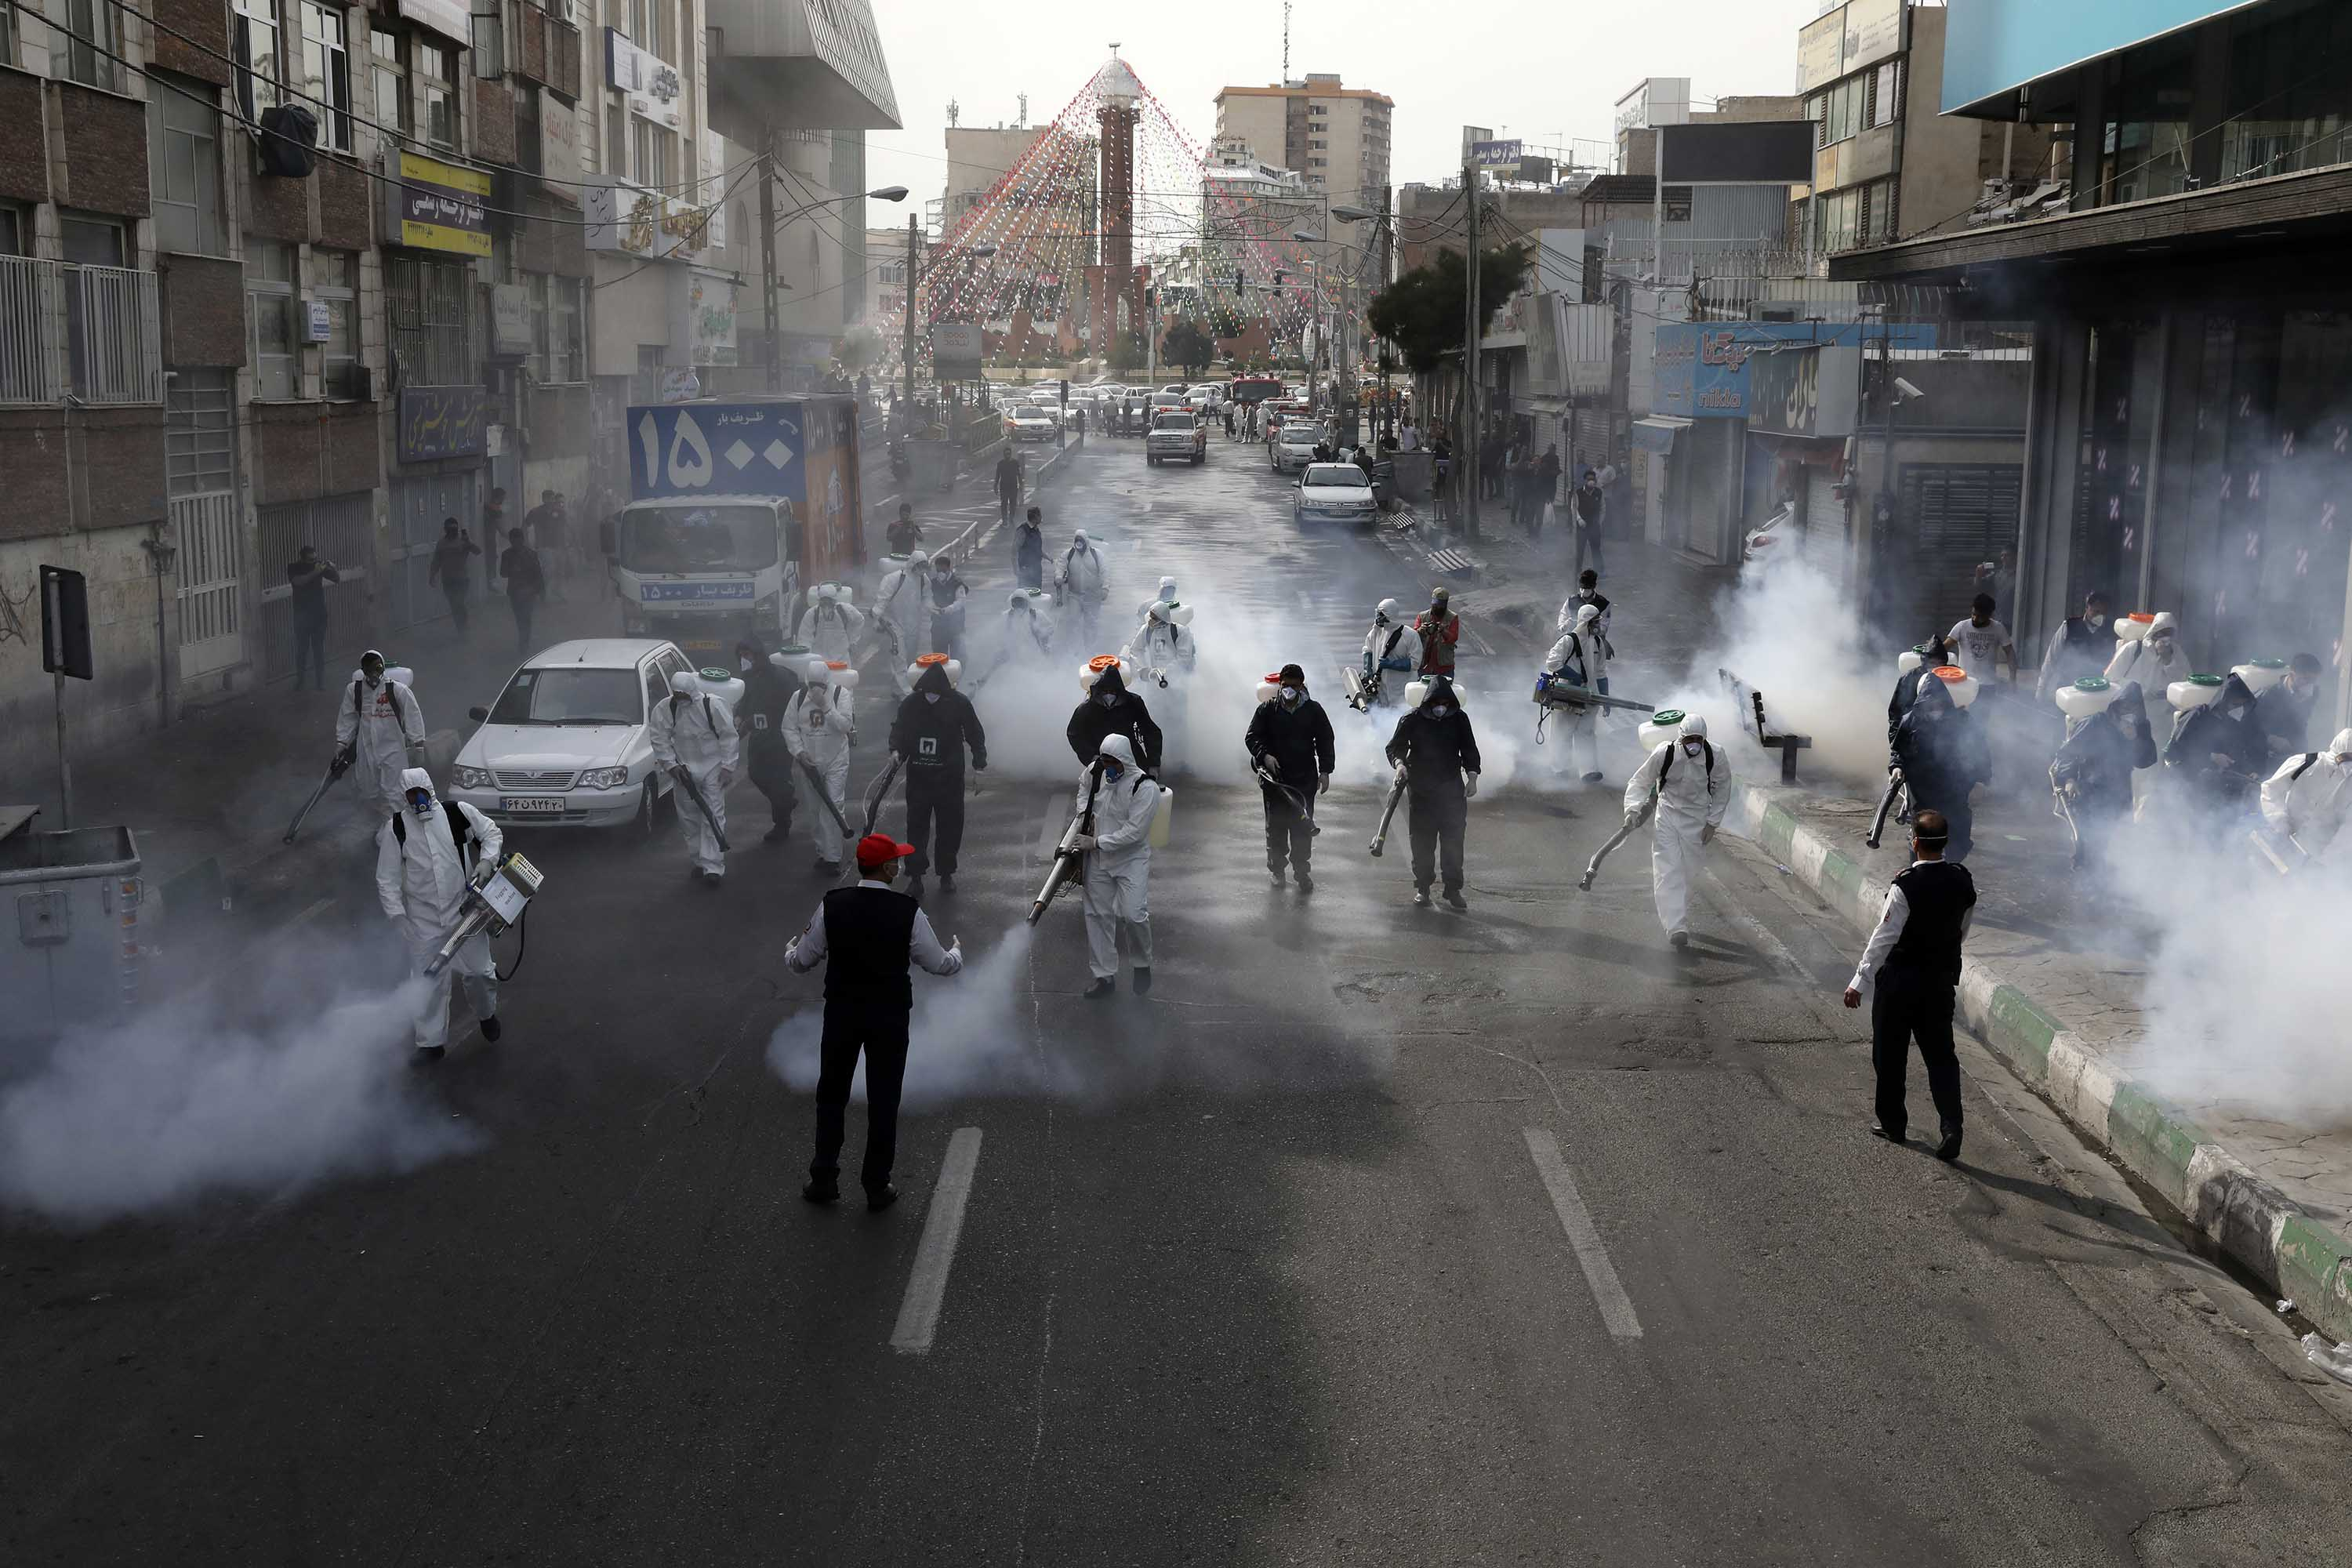 Firefighters disinfect a street against the coronavirus in Tehran, Iran, on March 13.